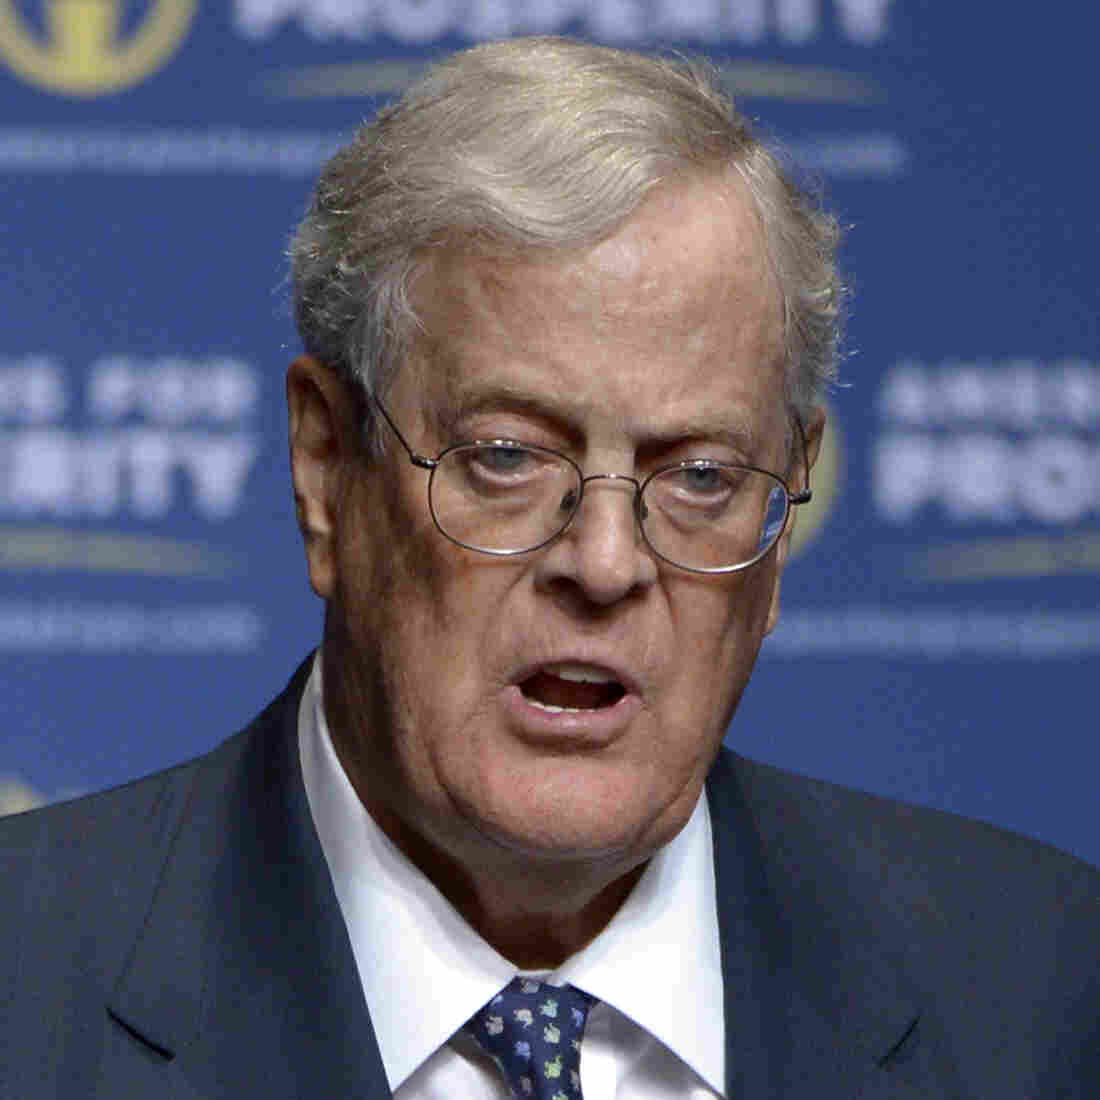 Why The Democrats' Koch Brothers Fixation?